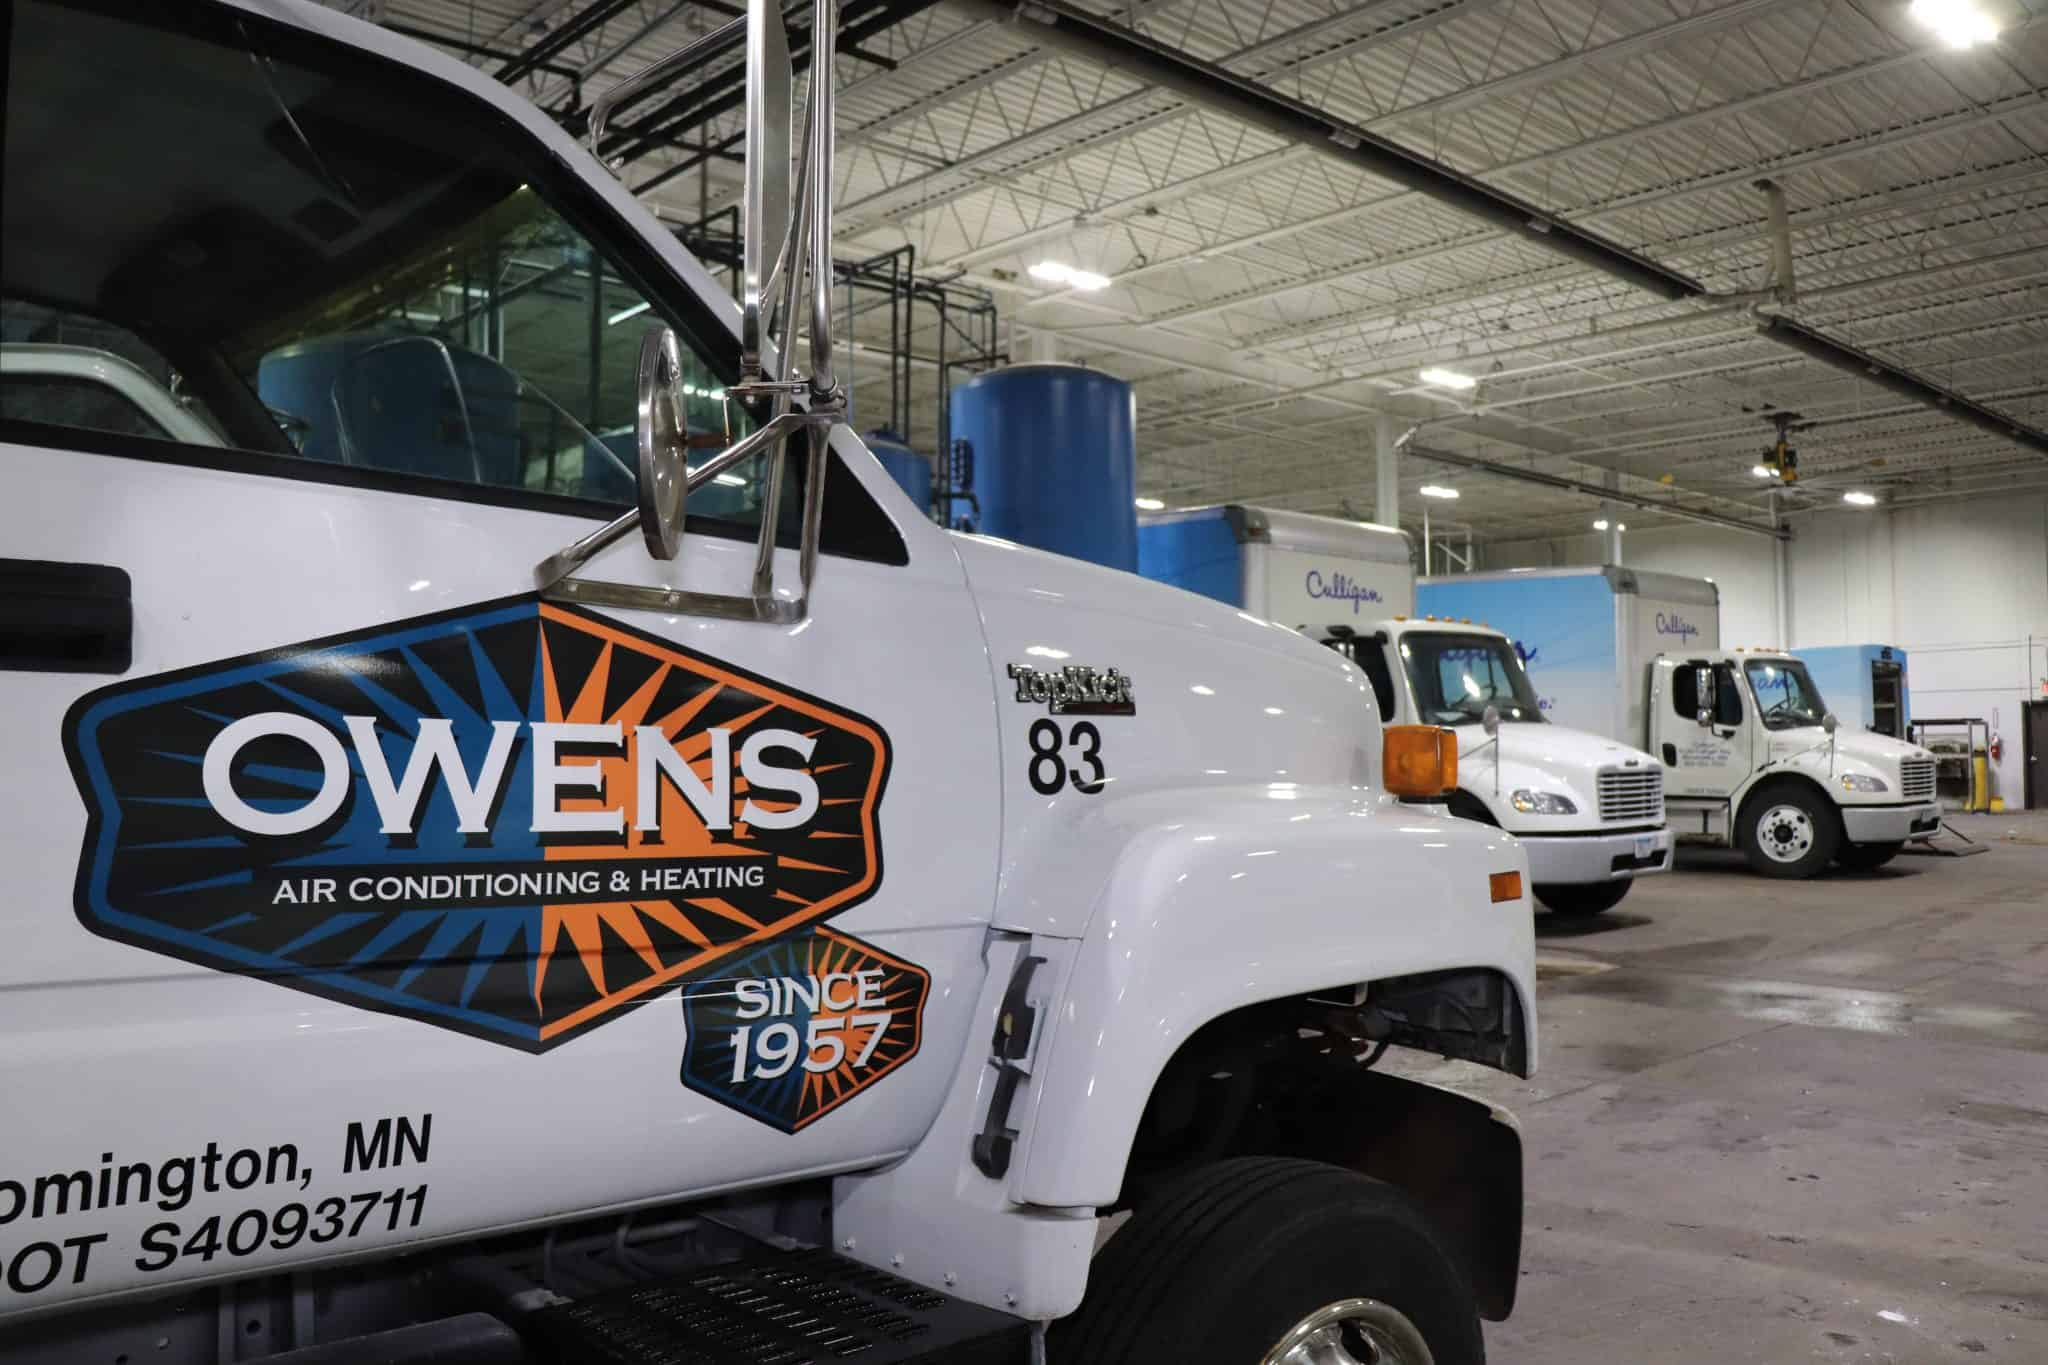 An Owens truck in a garage